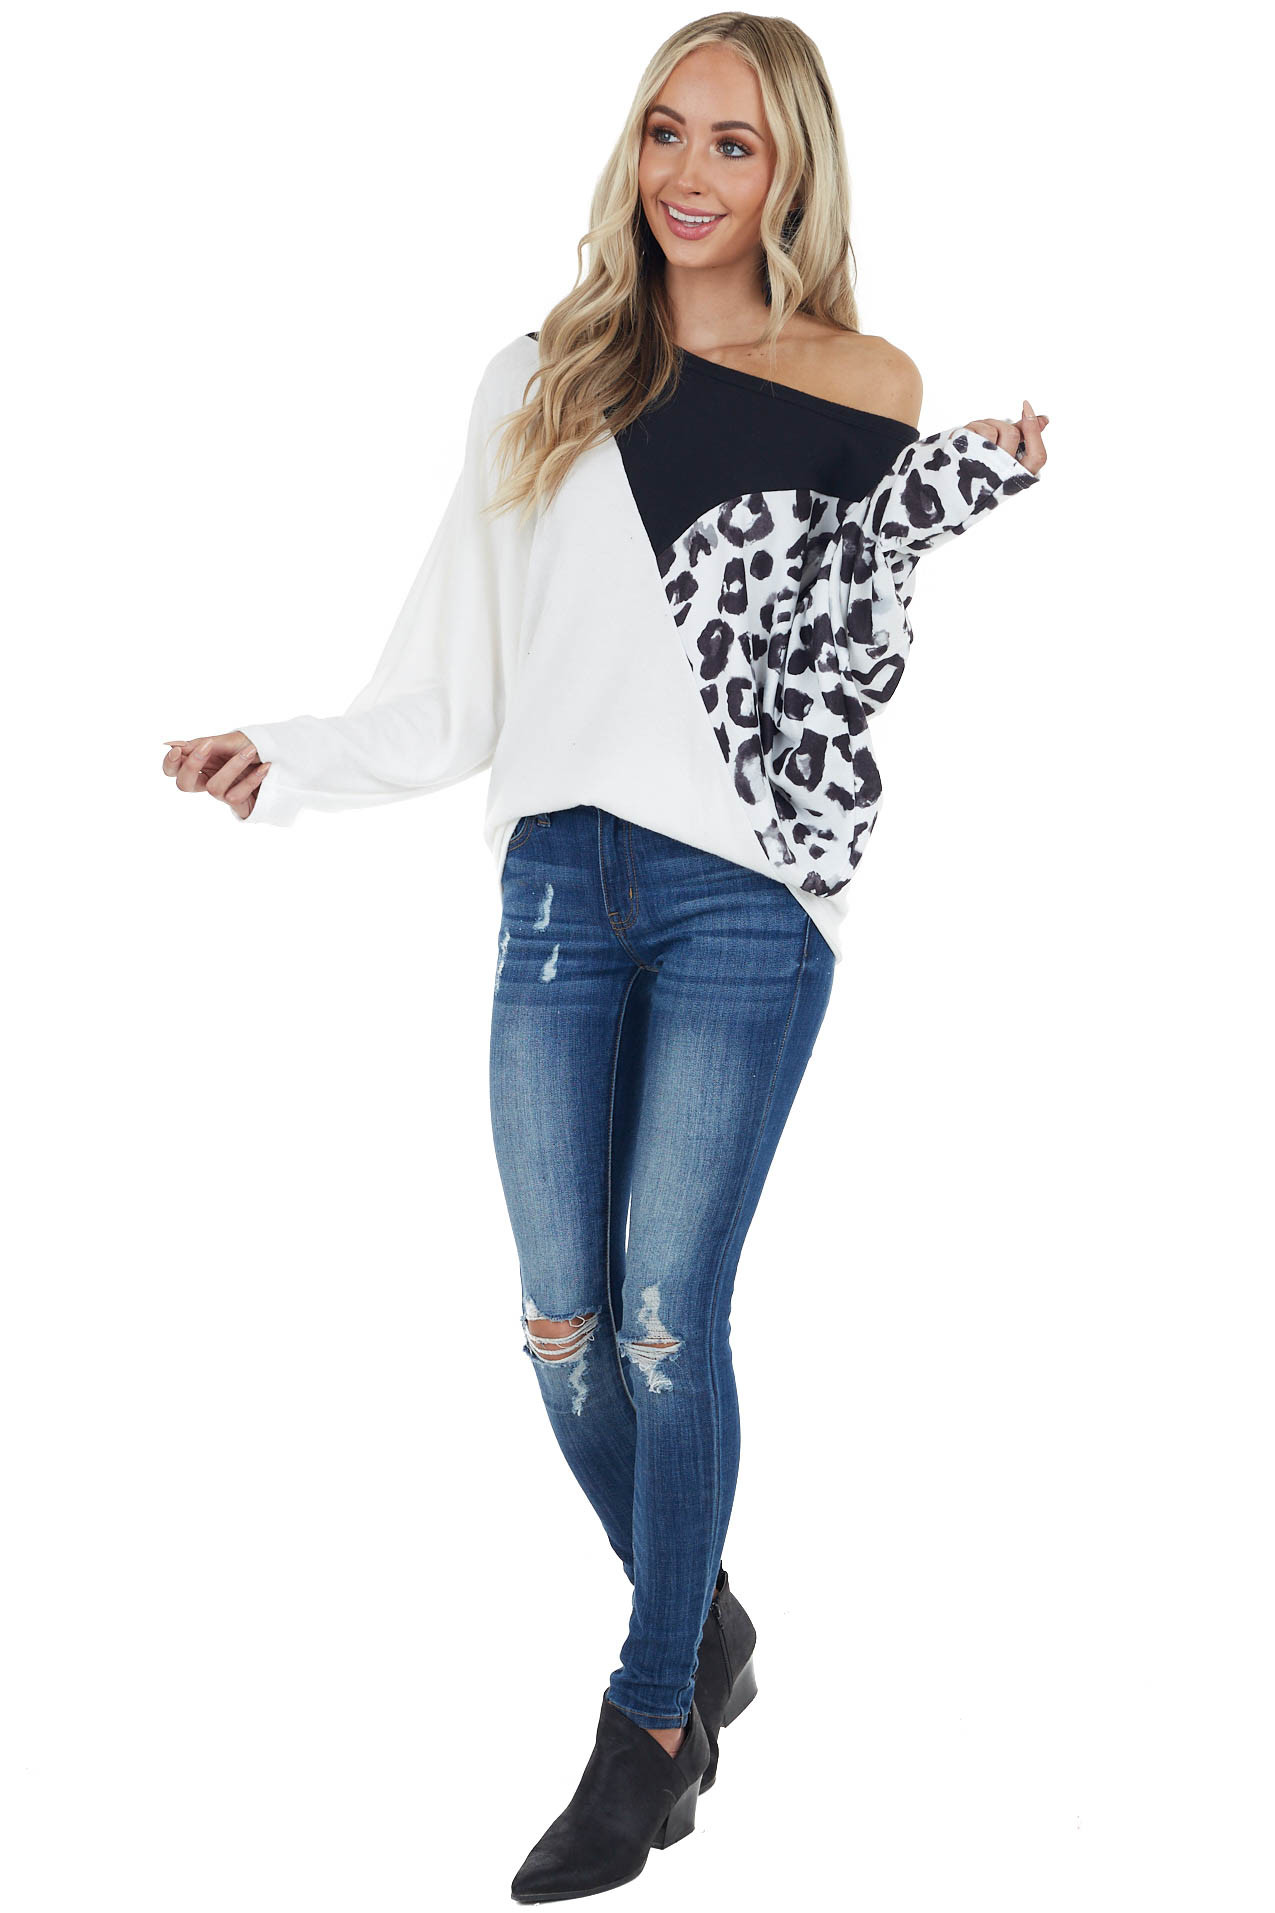 White and Black Colorblock Knit Top with Leopard Contrast